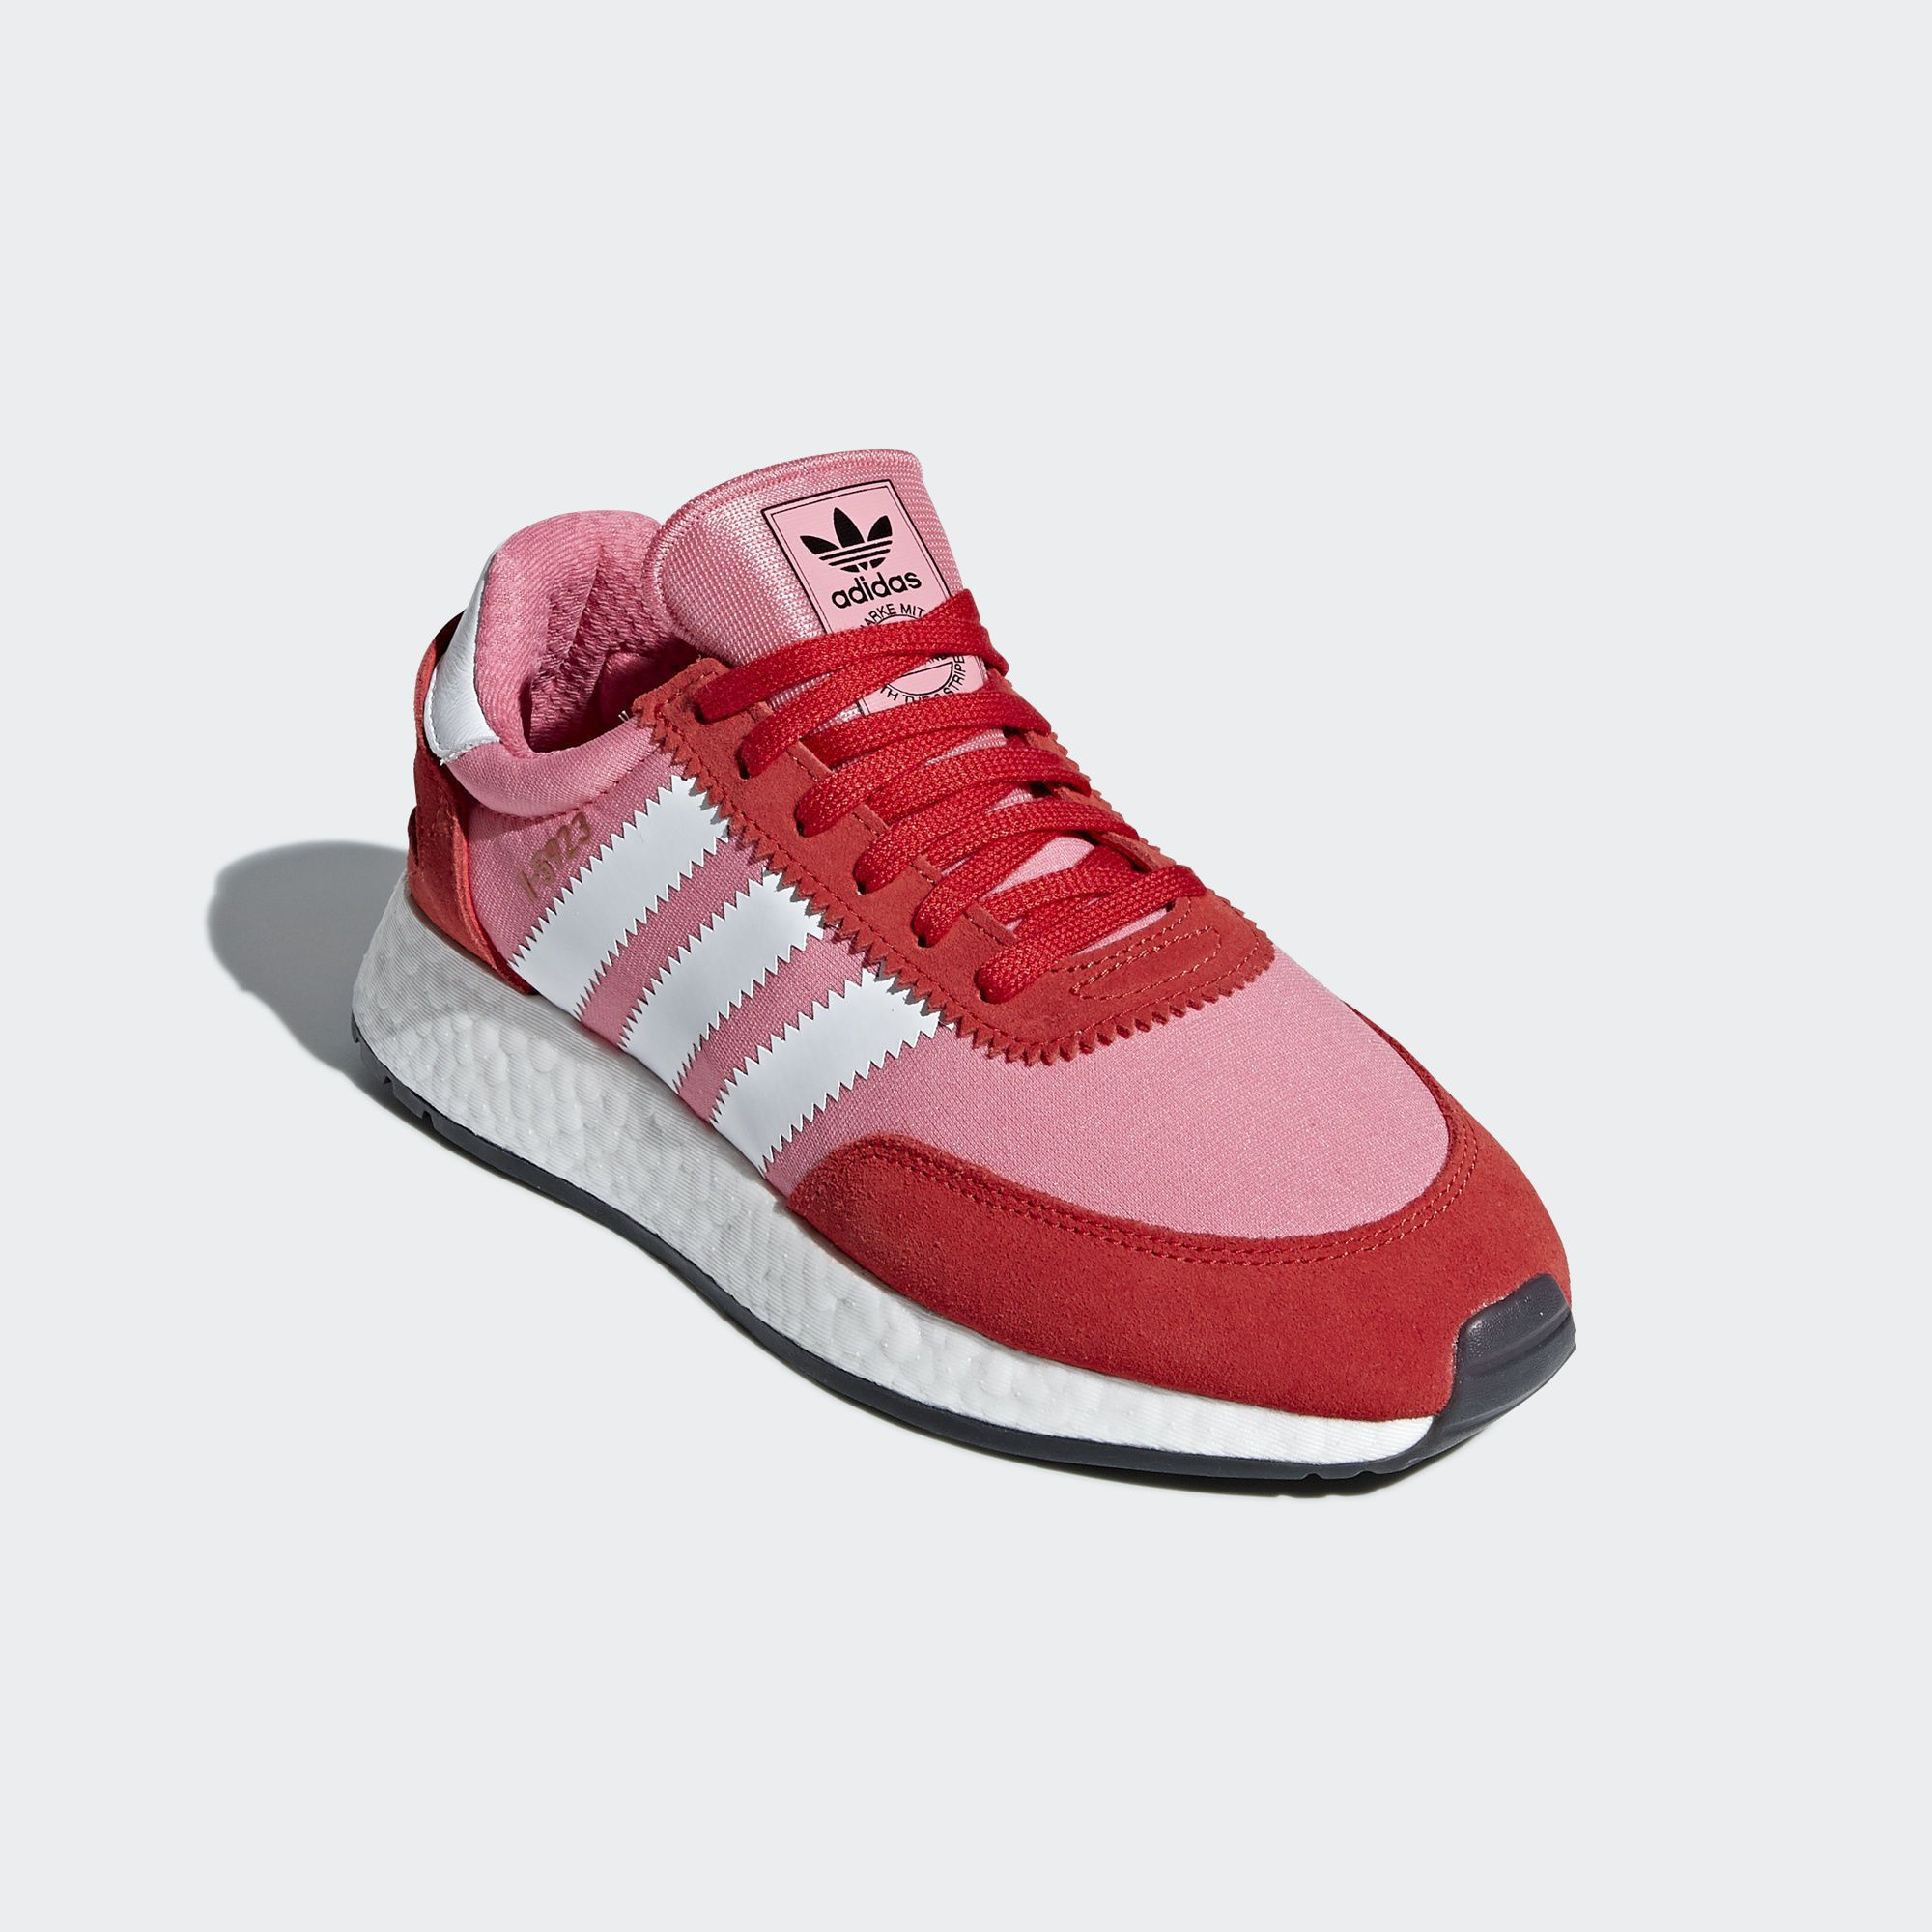 sports shoes 5927e a0aed adidas I-5923 Shoes - Pink  adidas US